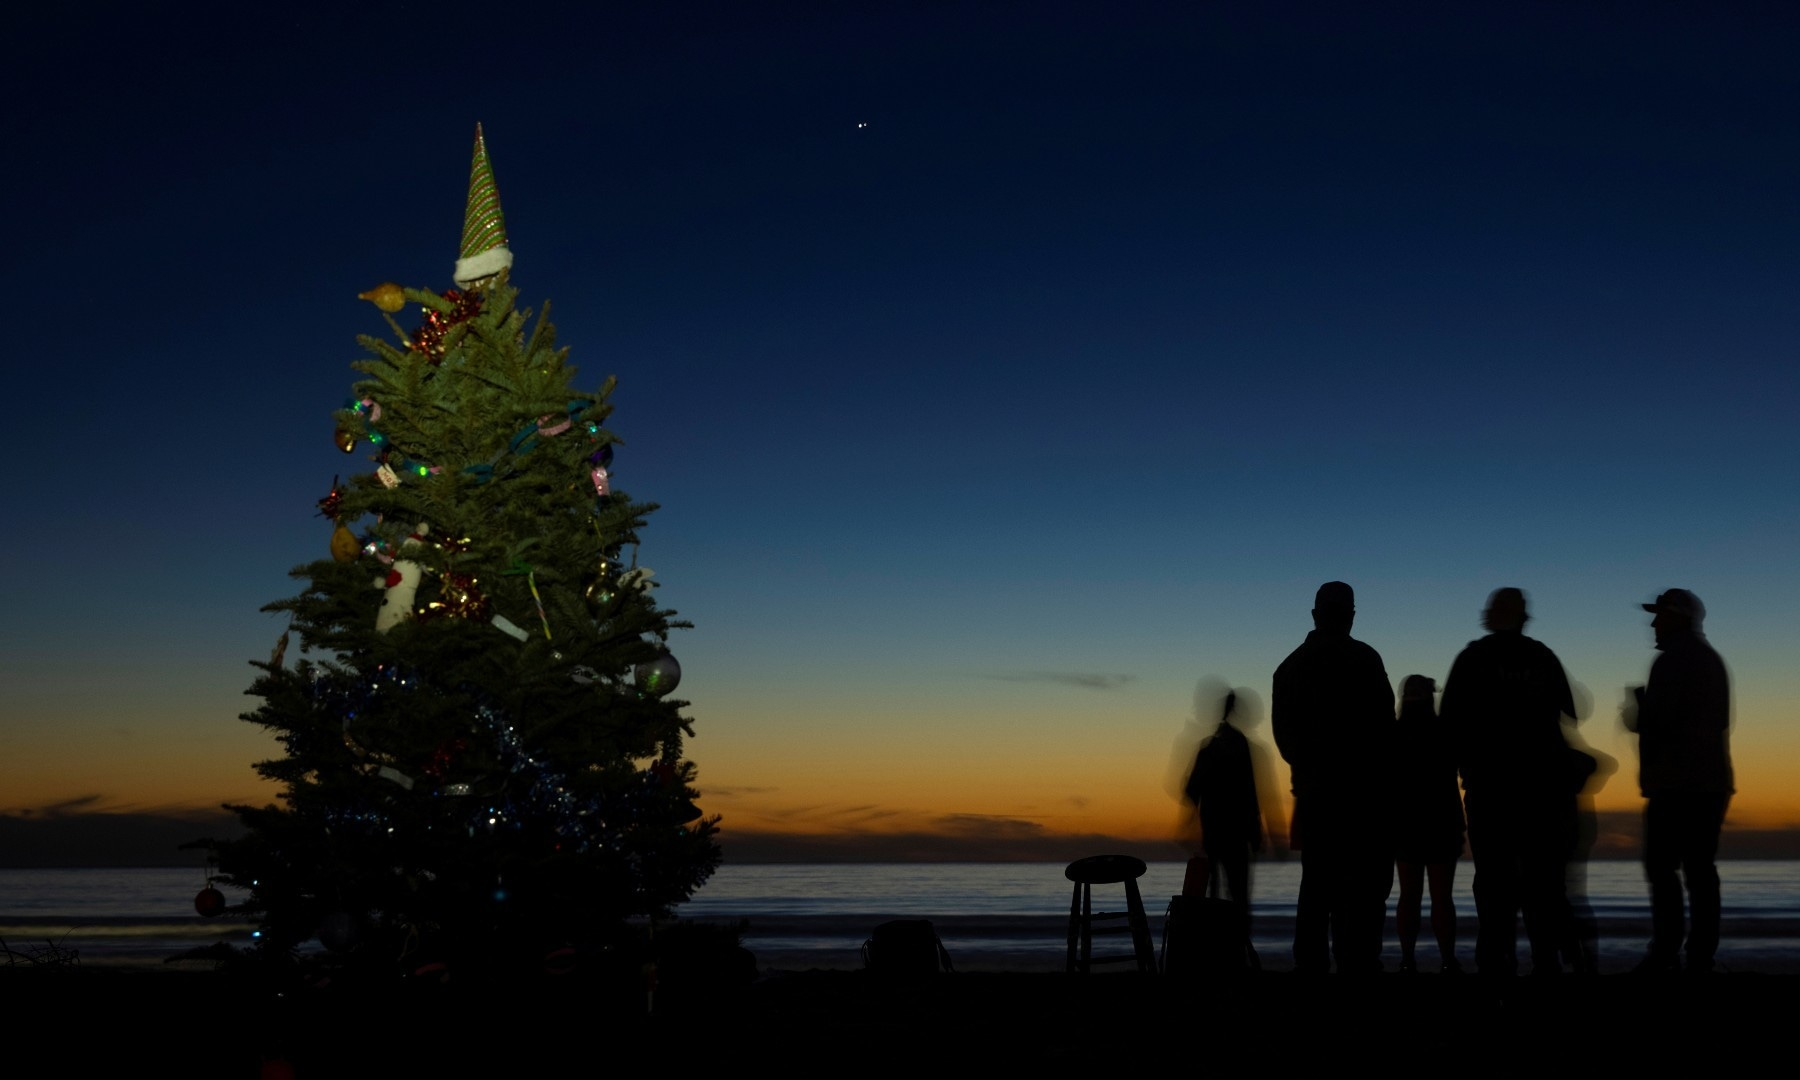 Groups of people gather near a Christmas tree on the beach as they watch the celestial phenomenon of the planets Jupiter and Saturn align in the sky at Cardiff State Beach on Dec 21. — Reuters